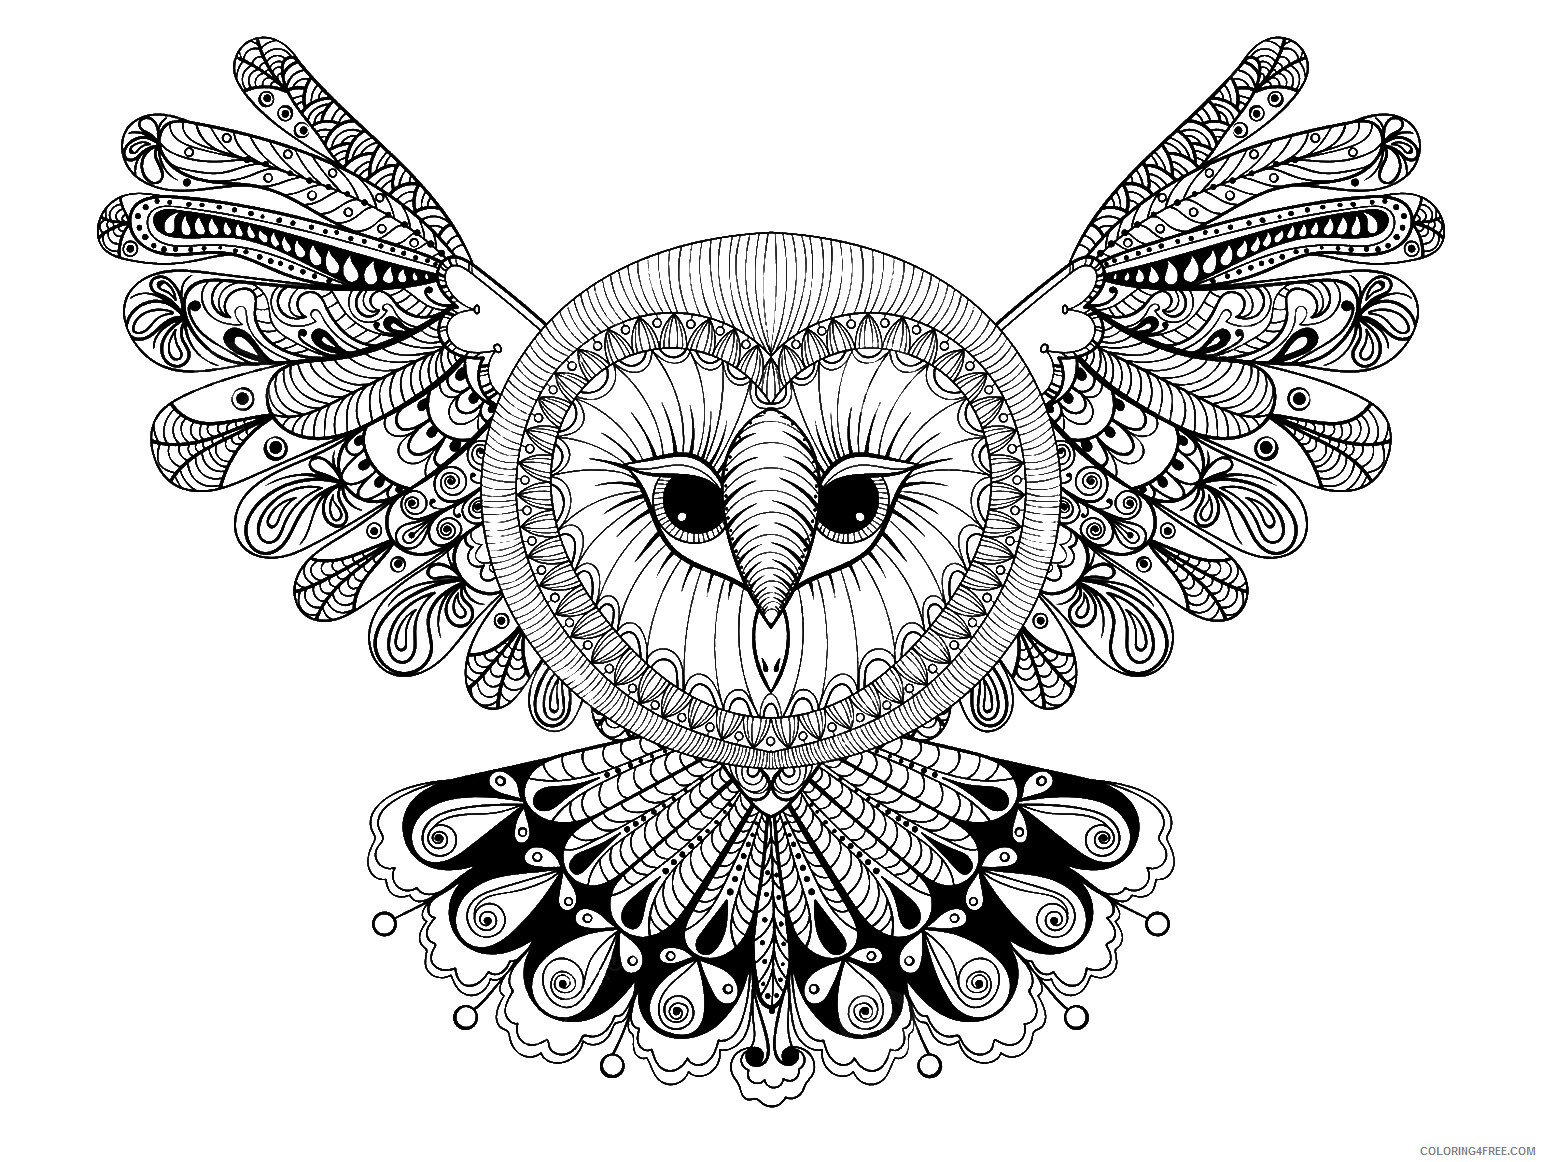 Adult Animals Coloring Pages Owl Animal for Adults Printable 2020 160 Coloring4free